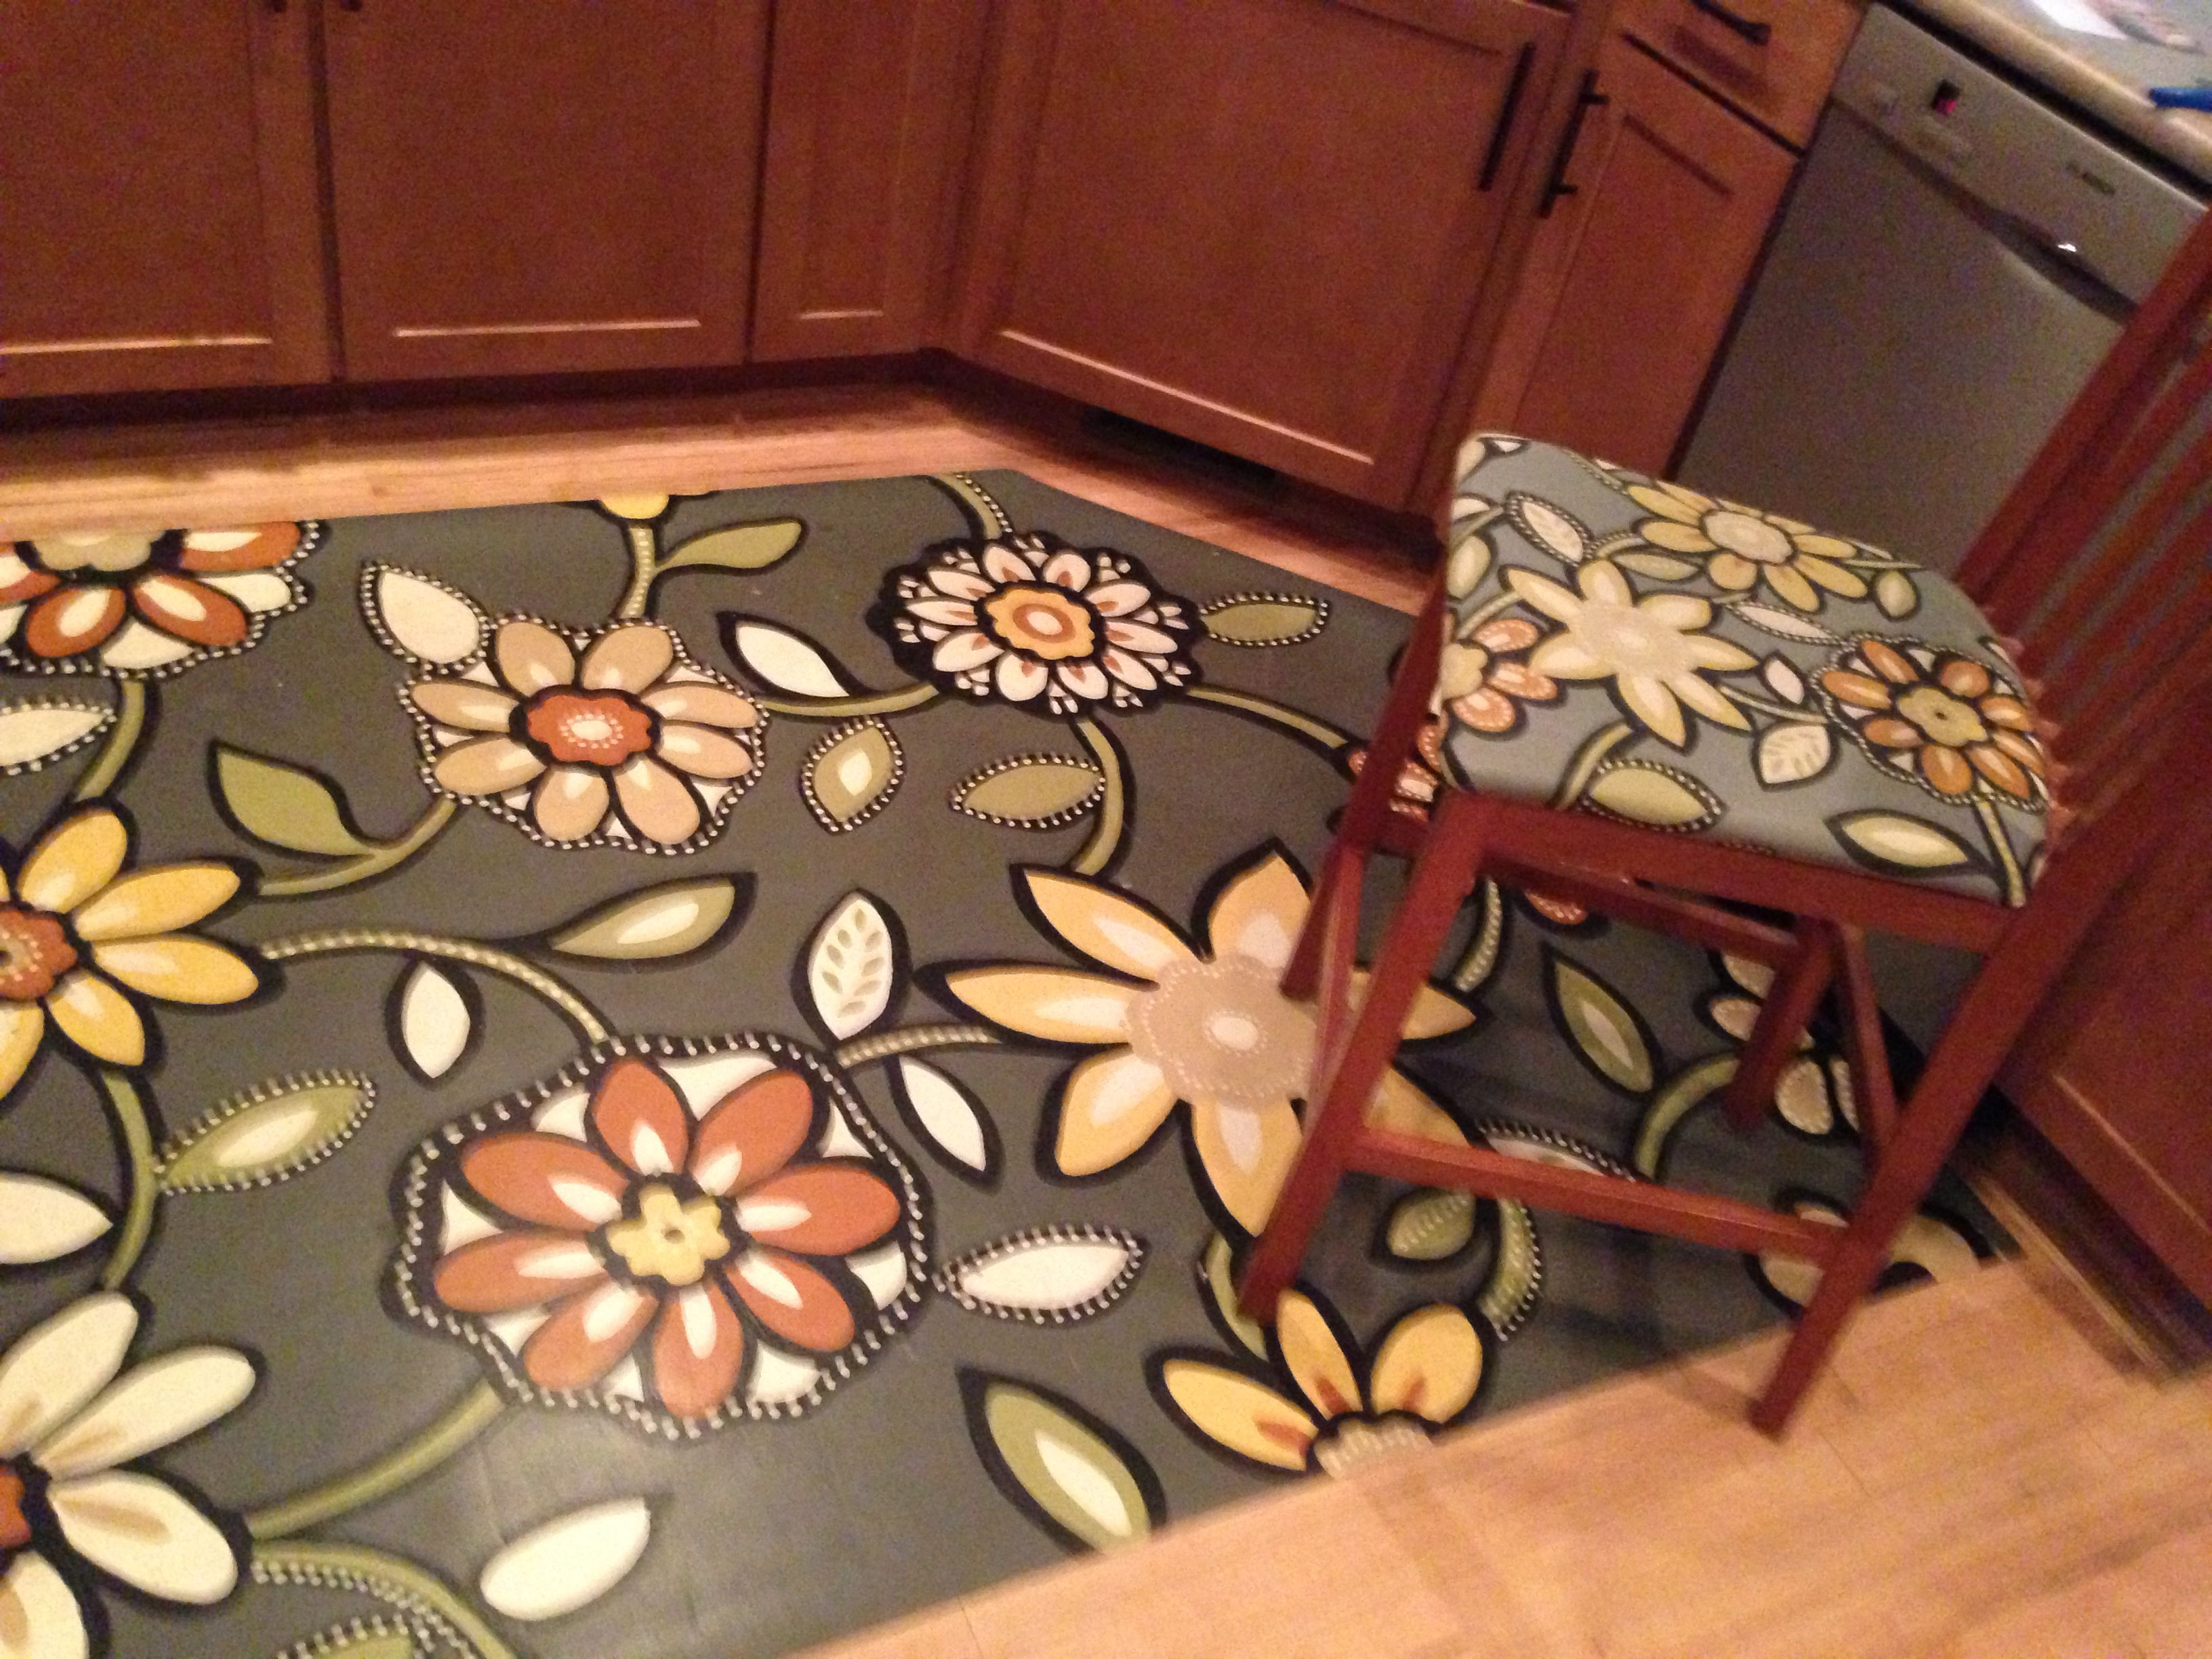 you cloths are custom and me susan with designs floor tallon would sizes please like picture email available floors what